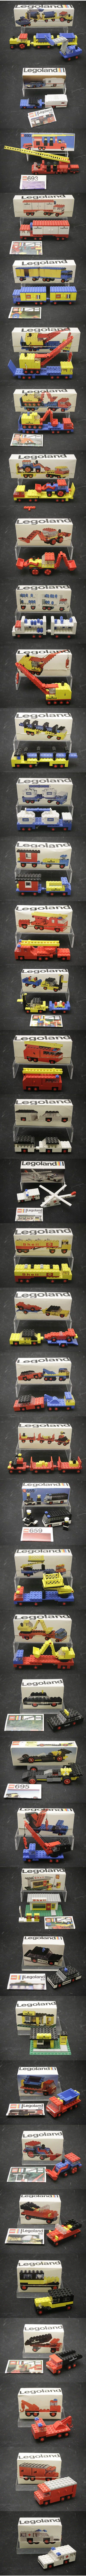 FOR SALE - ON EBAY.DE, NOW! | LEGO VEHICLES | 1970's VINTAGE TOYS | IN BOX